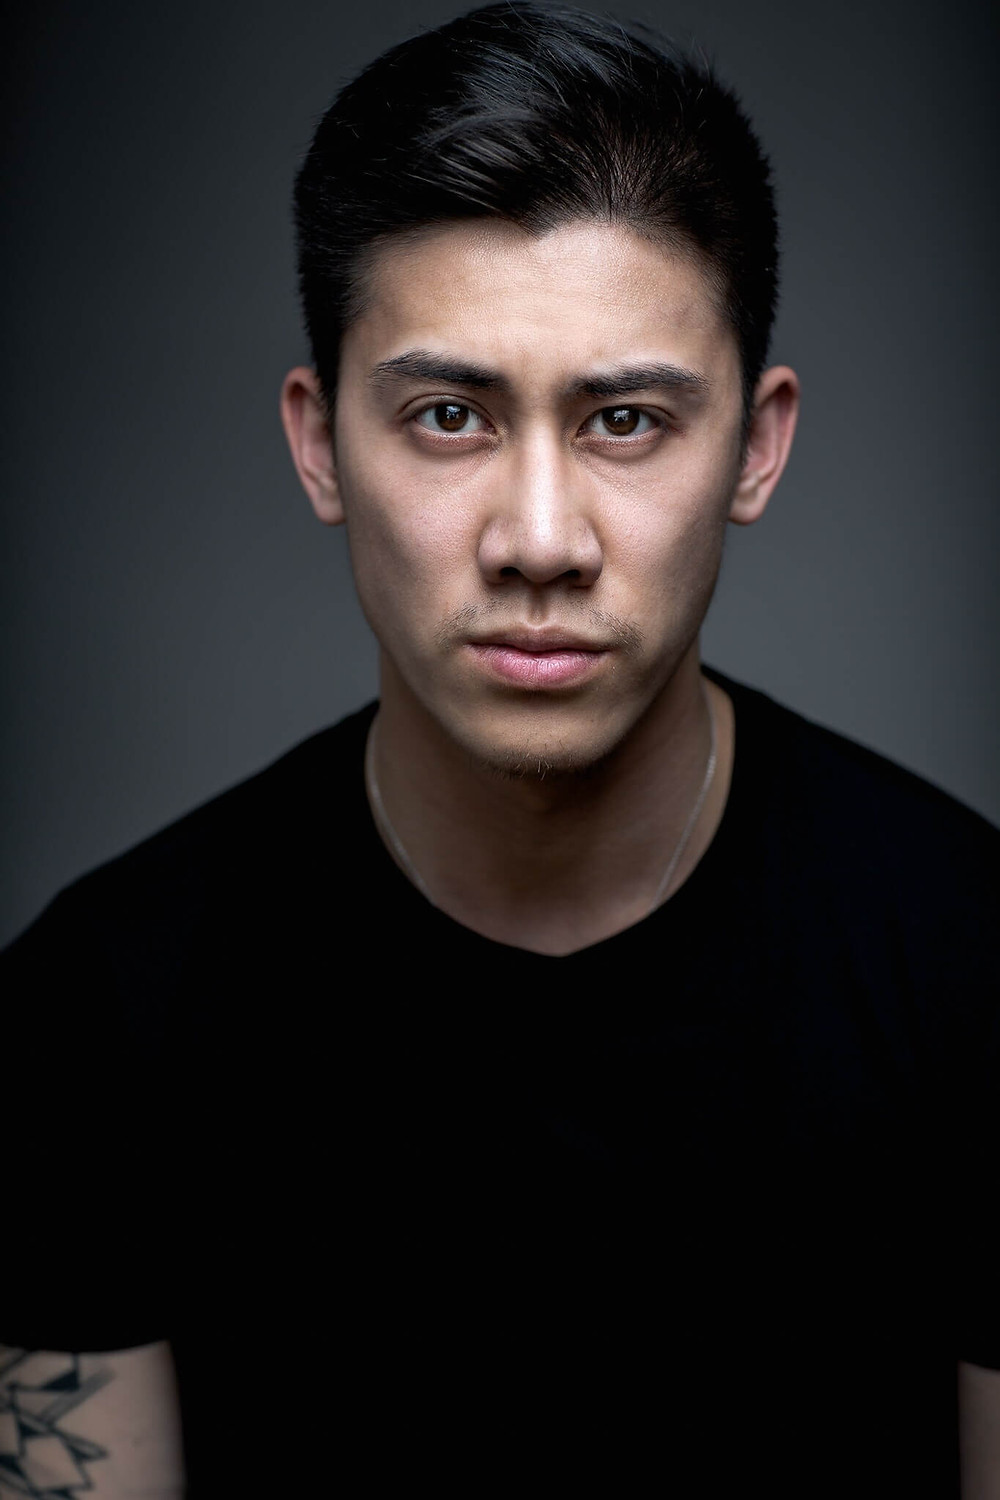 Tom Nguyen, motion capture, Shaolin Kung-Fu, multilingual actor, Vietnamese, Hungarian